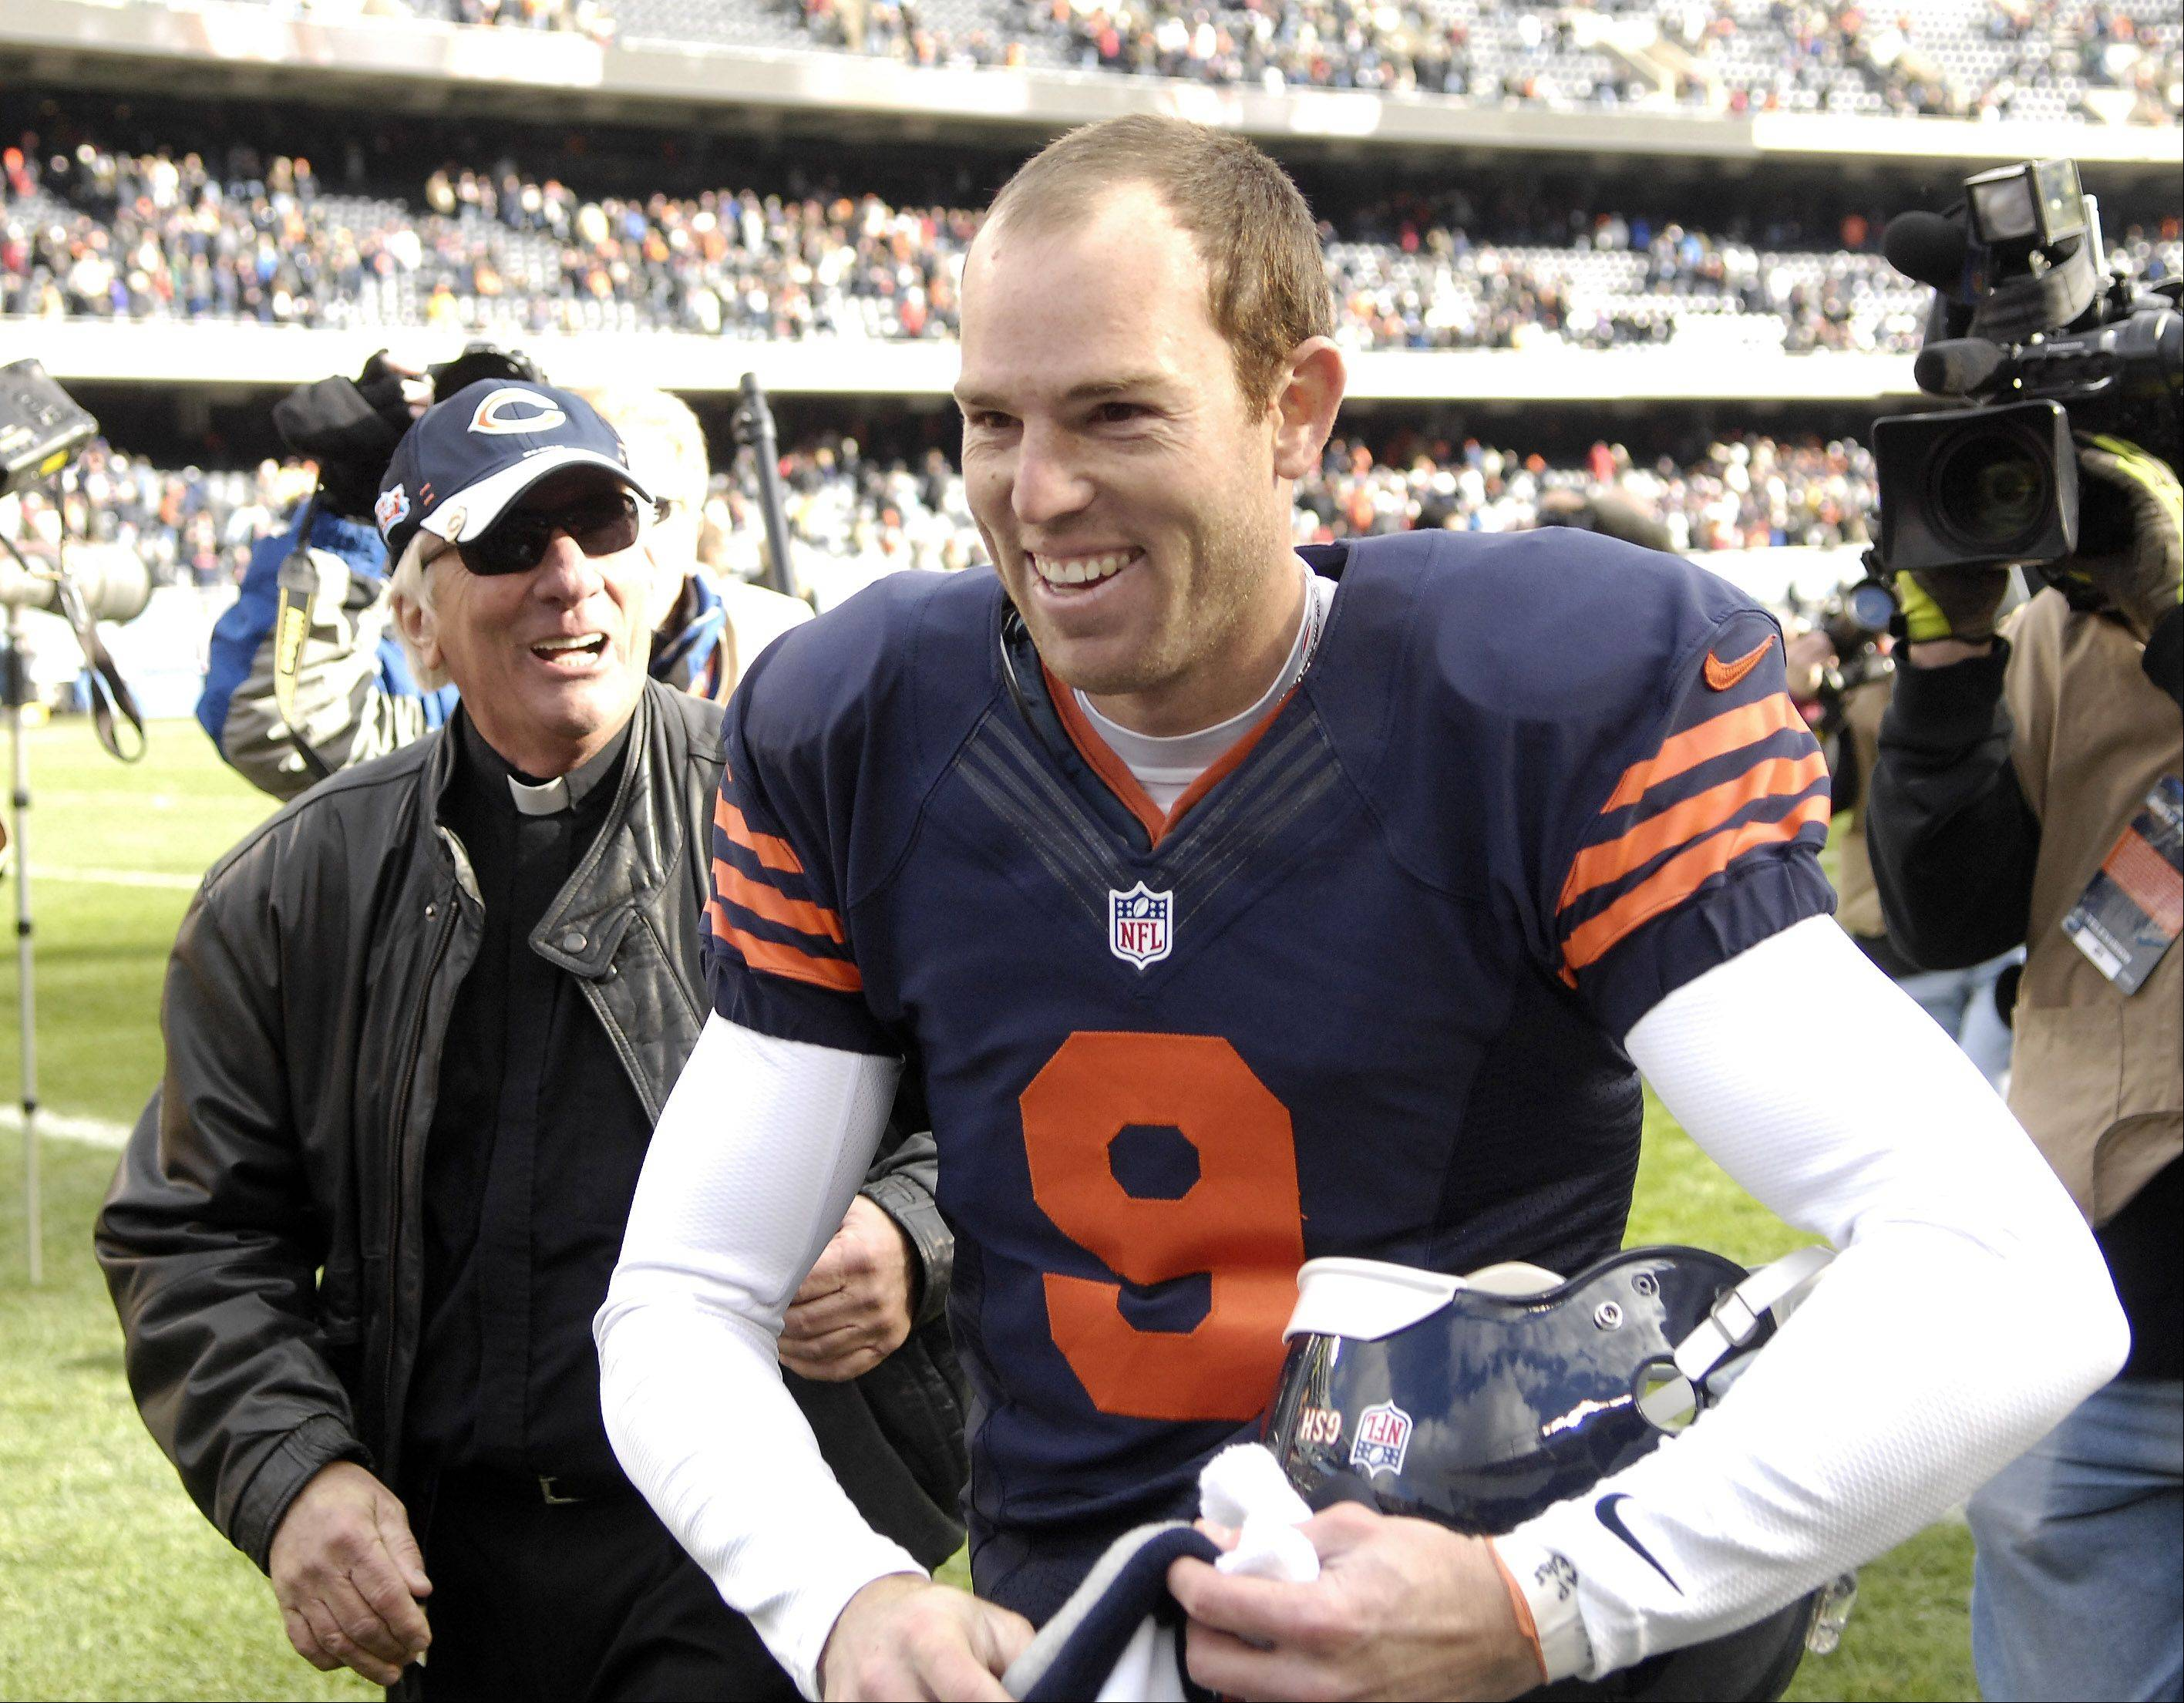 Only three other kickers in NFL history have made a higher percentage of field goals than the Bears' Robbie Gould.